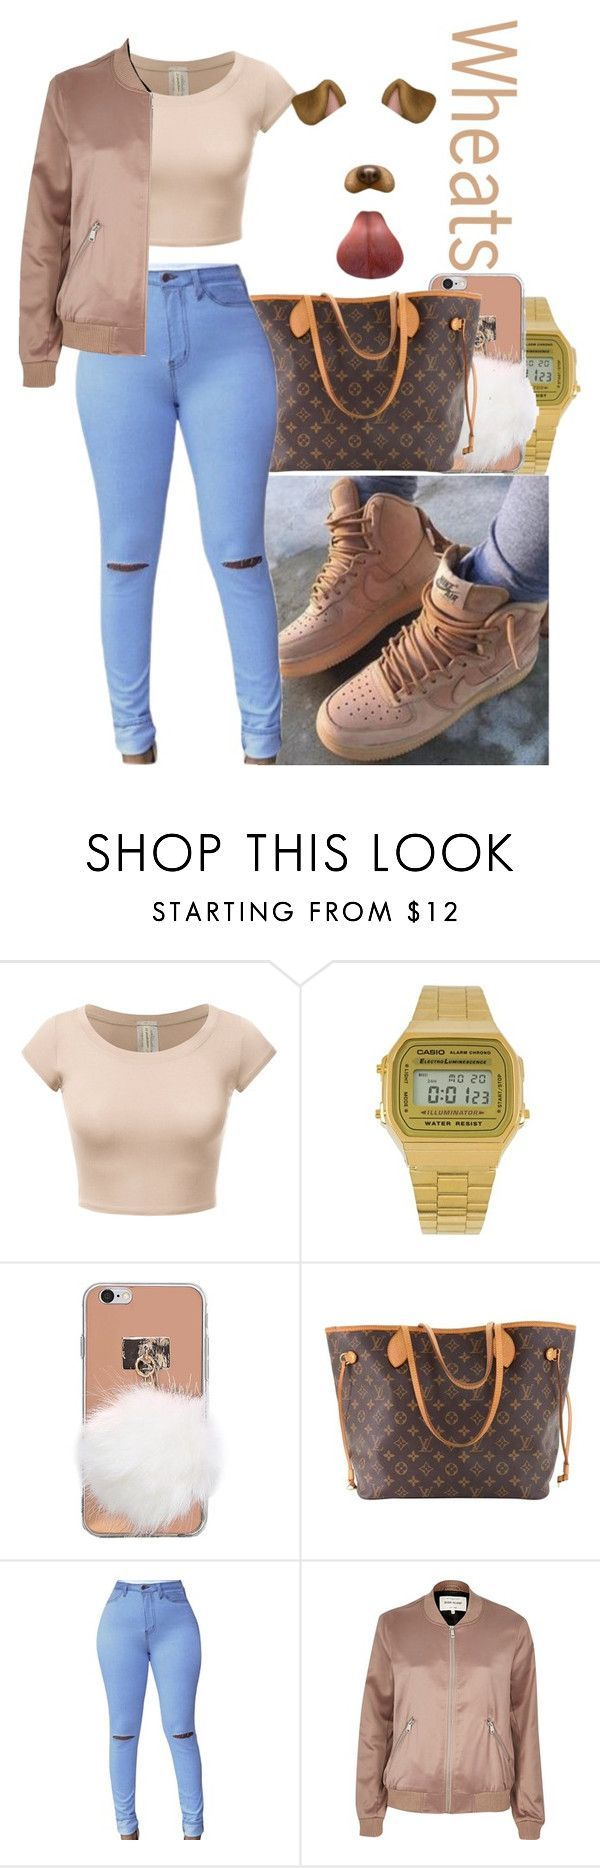 """""""Wheats"""" by creativenarwhal on Polyvore featuring Nike air force, Casio, Louis Vuitton and River Island"""